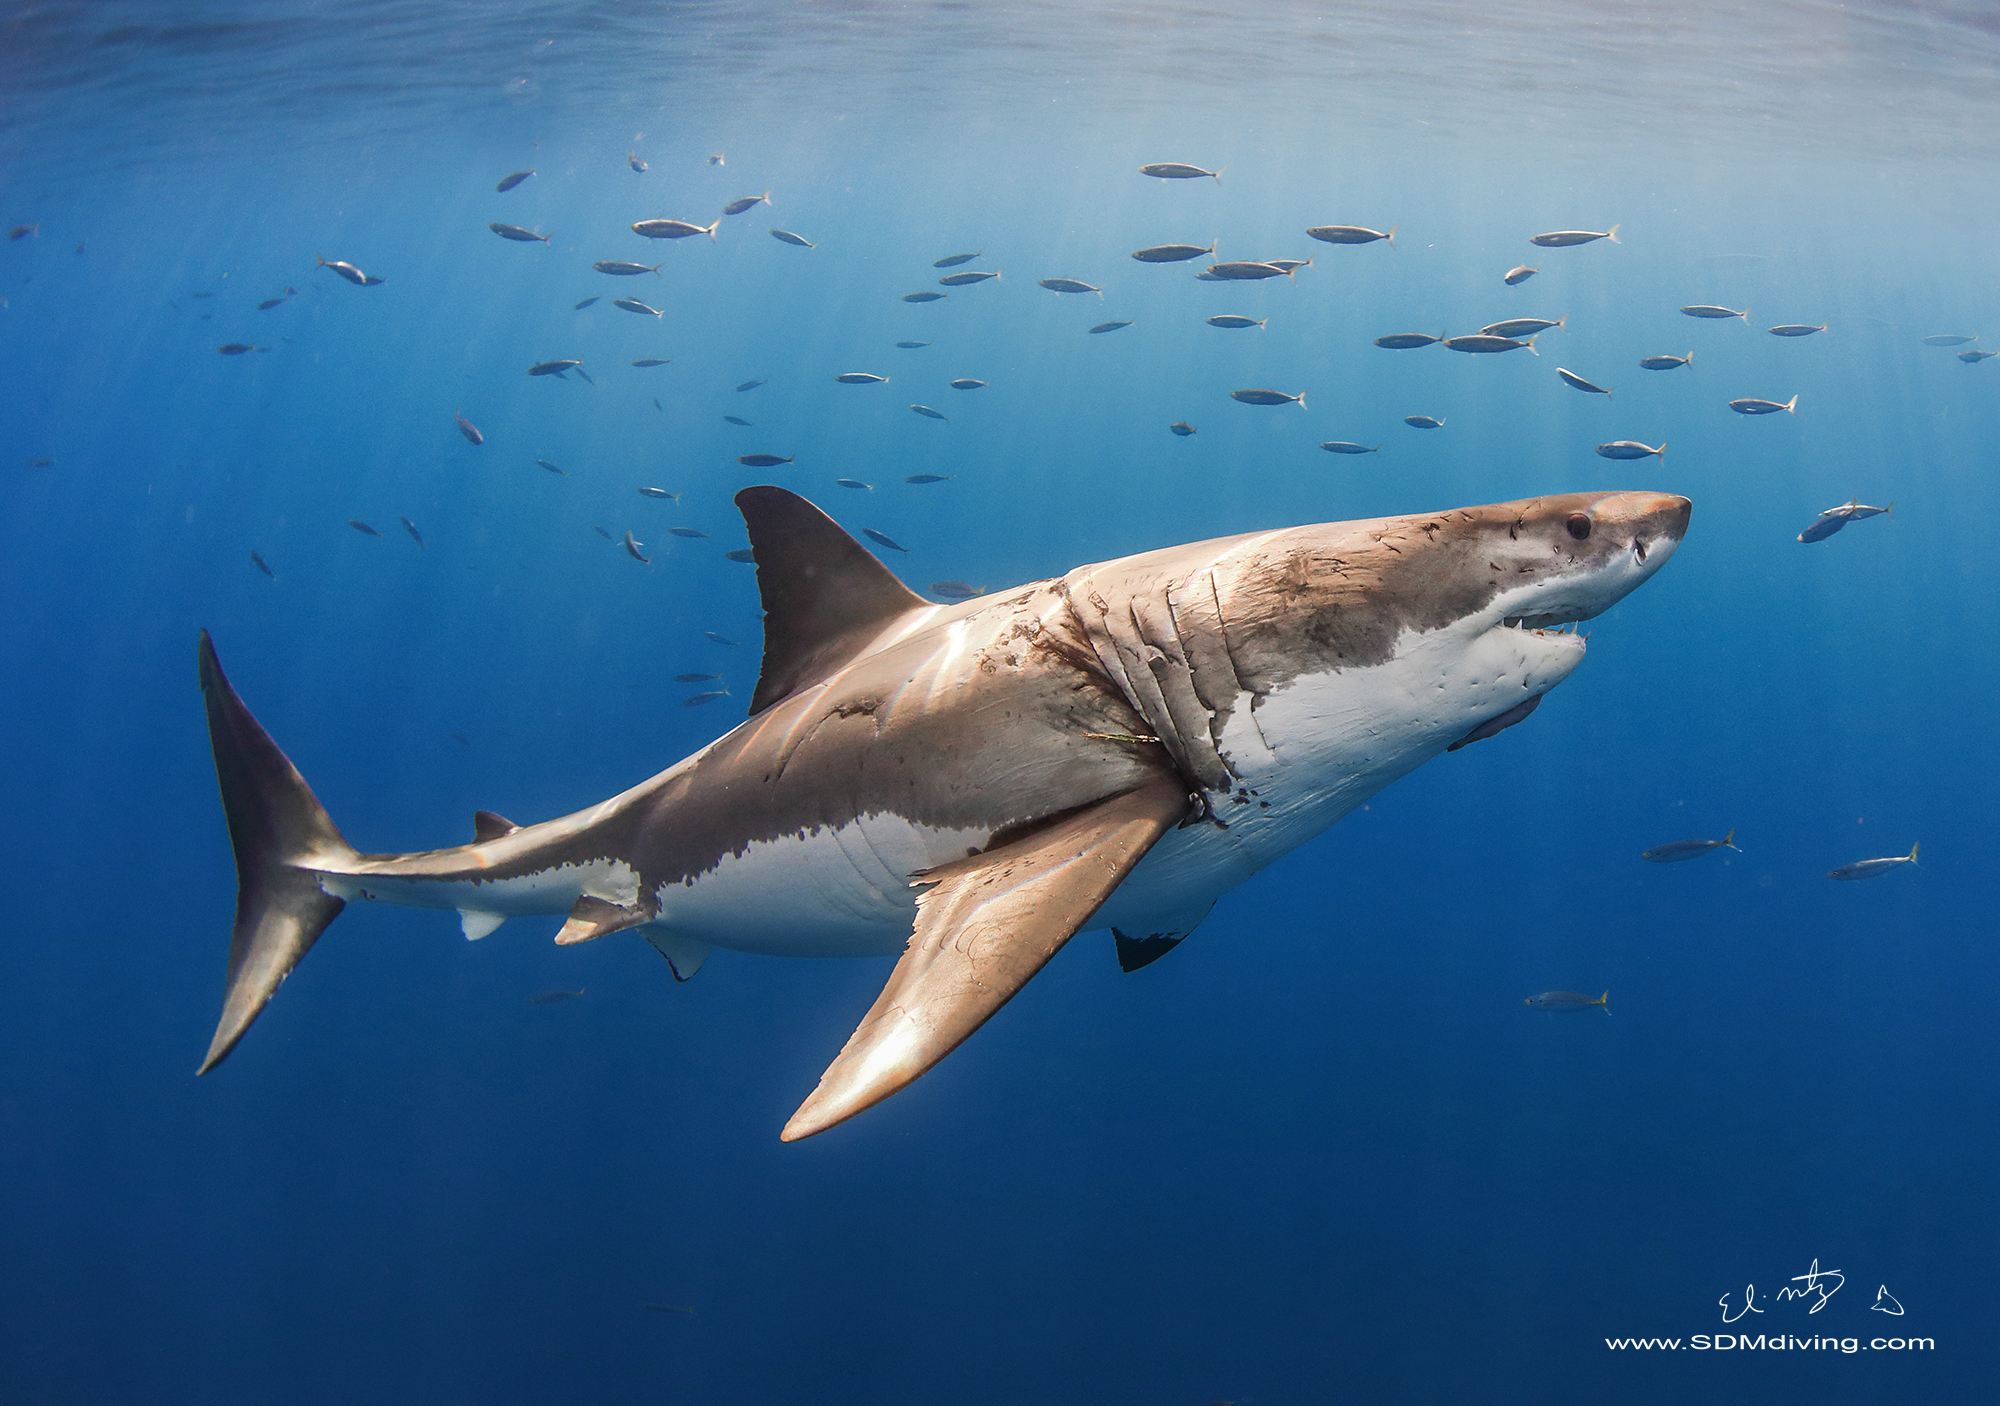 11. Great white shark off Guadalupe Island, Mx.